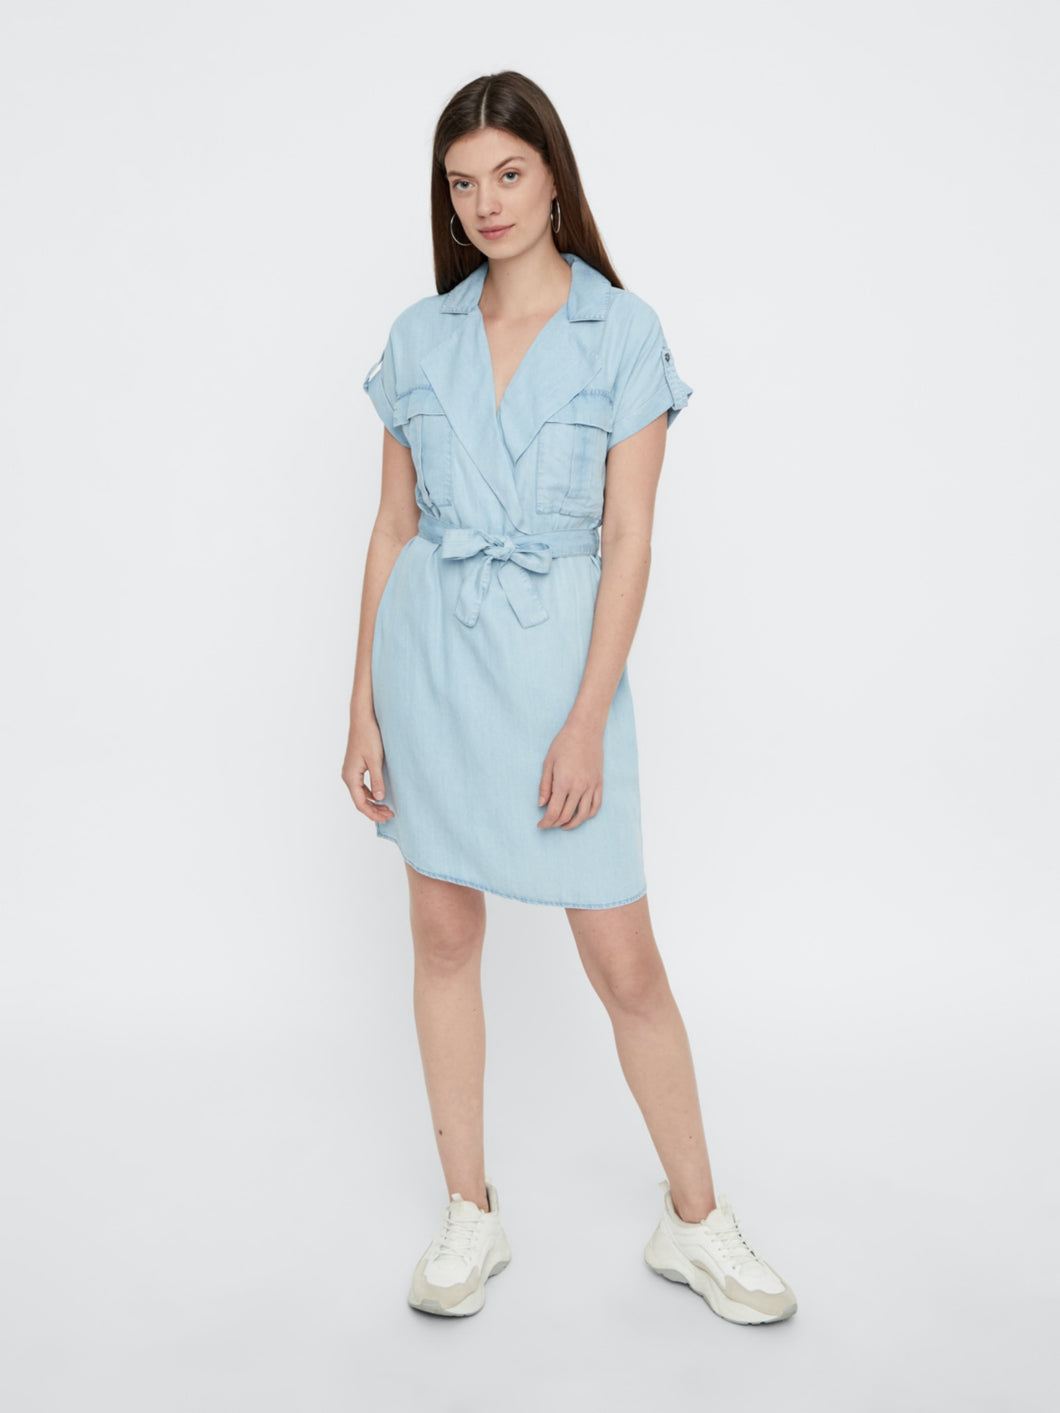 Vera Shirt Dress - Light Blue Denim / XS - KLÄNNINGAR BLÅ,